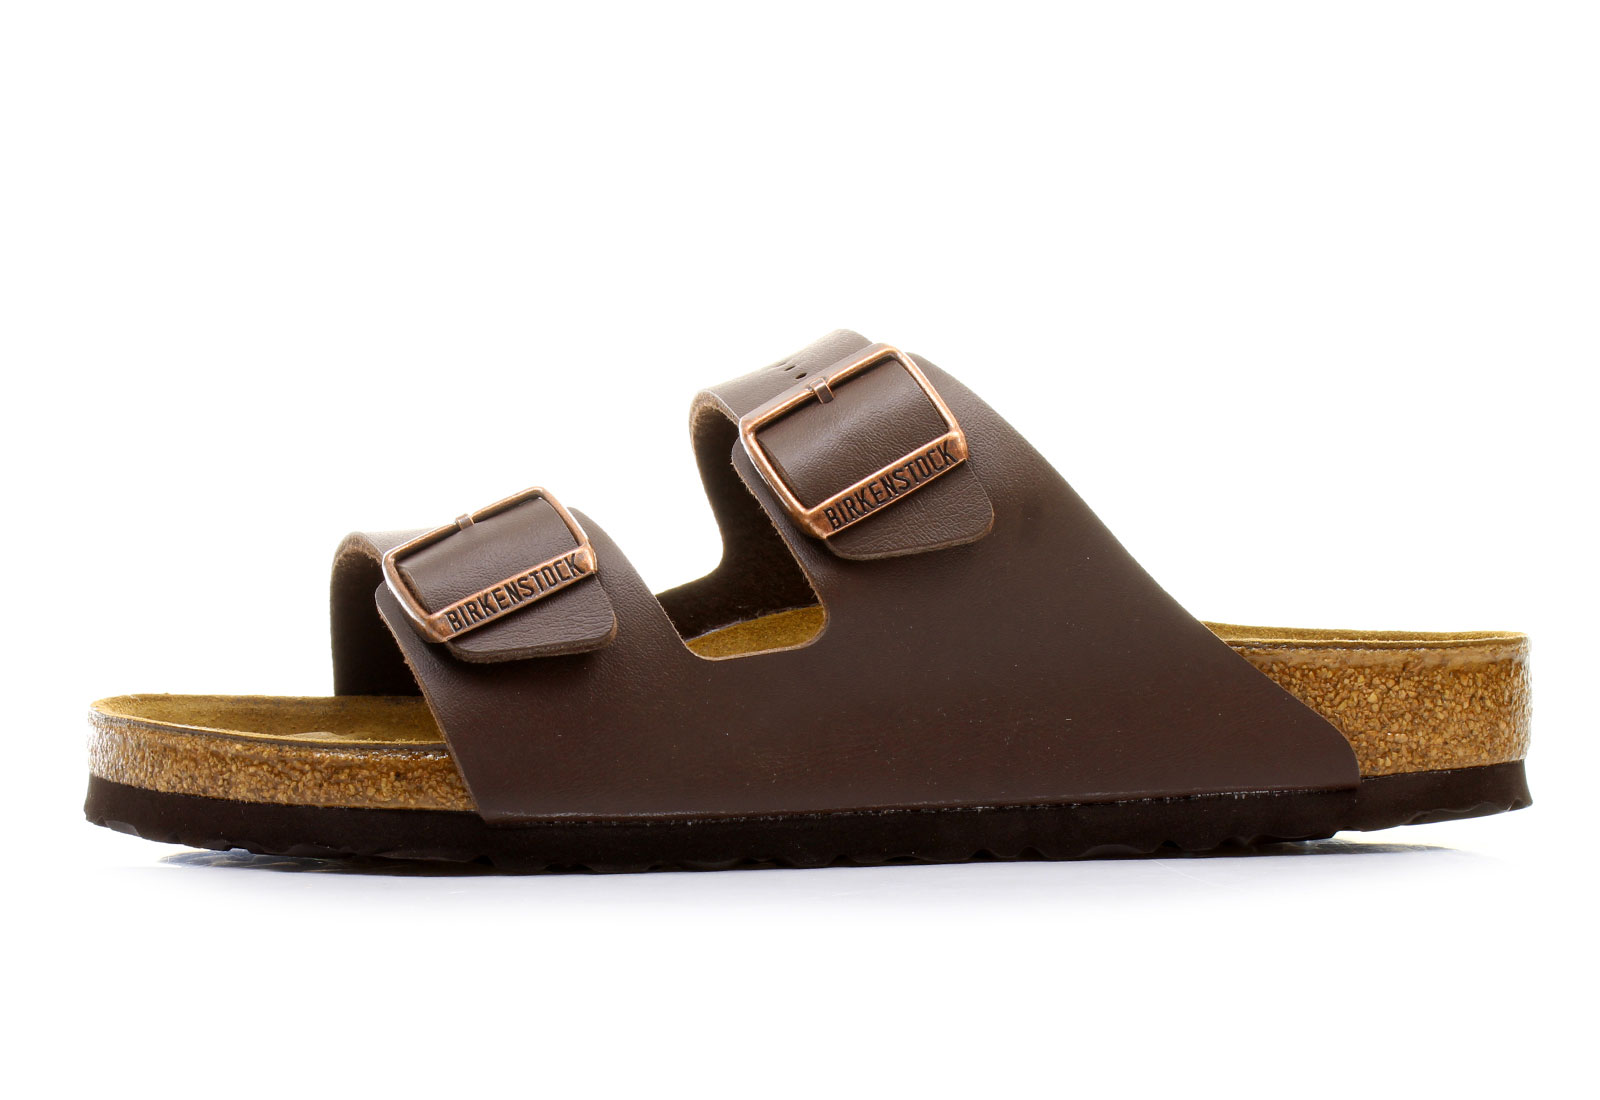 Birkenstock Slippers - Arizona - 051701-dbr - Online shop for sneakers, shoes and boots